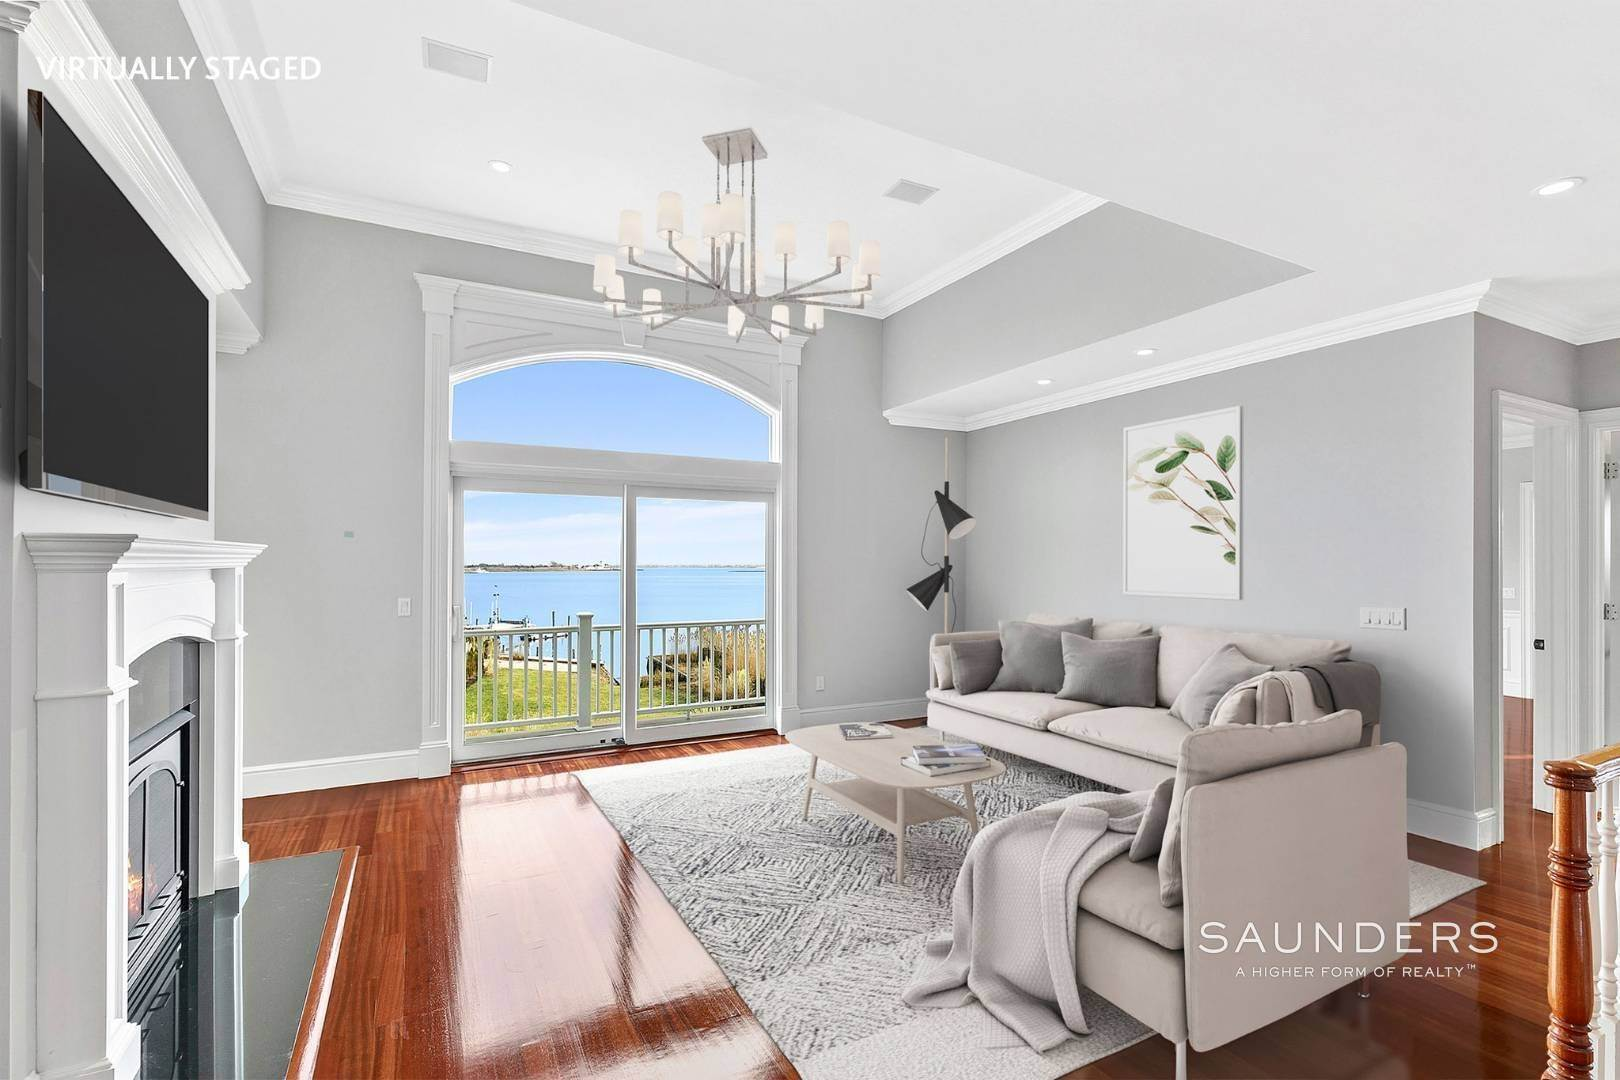 13. Single Family Homes for Sale at Waterfront Estate 99 Paquatuck Avenue, East Moriches, Hamptons Fringe, NY 11940